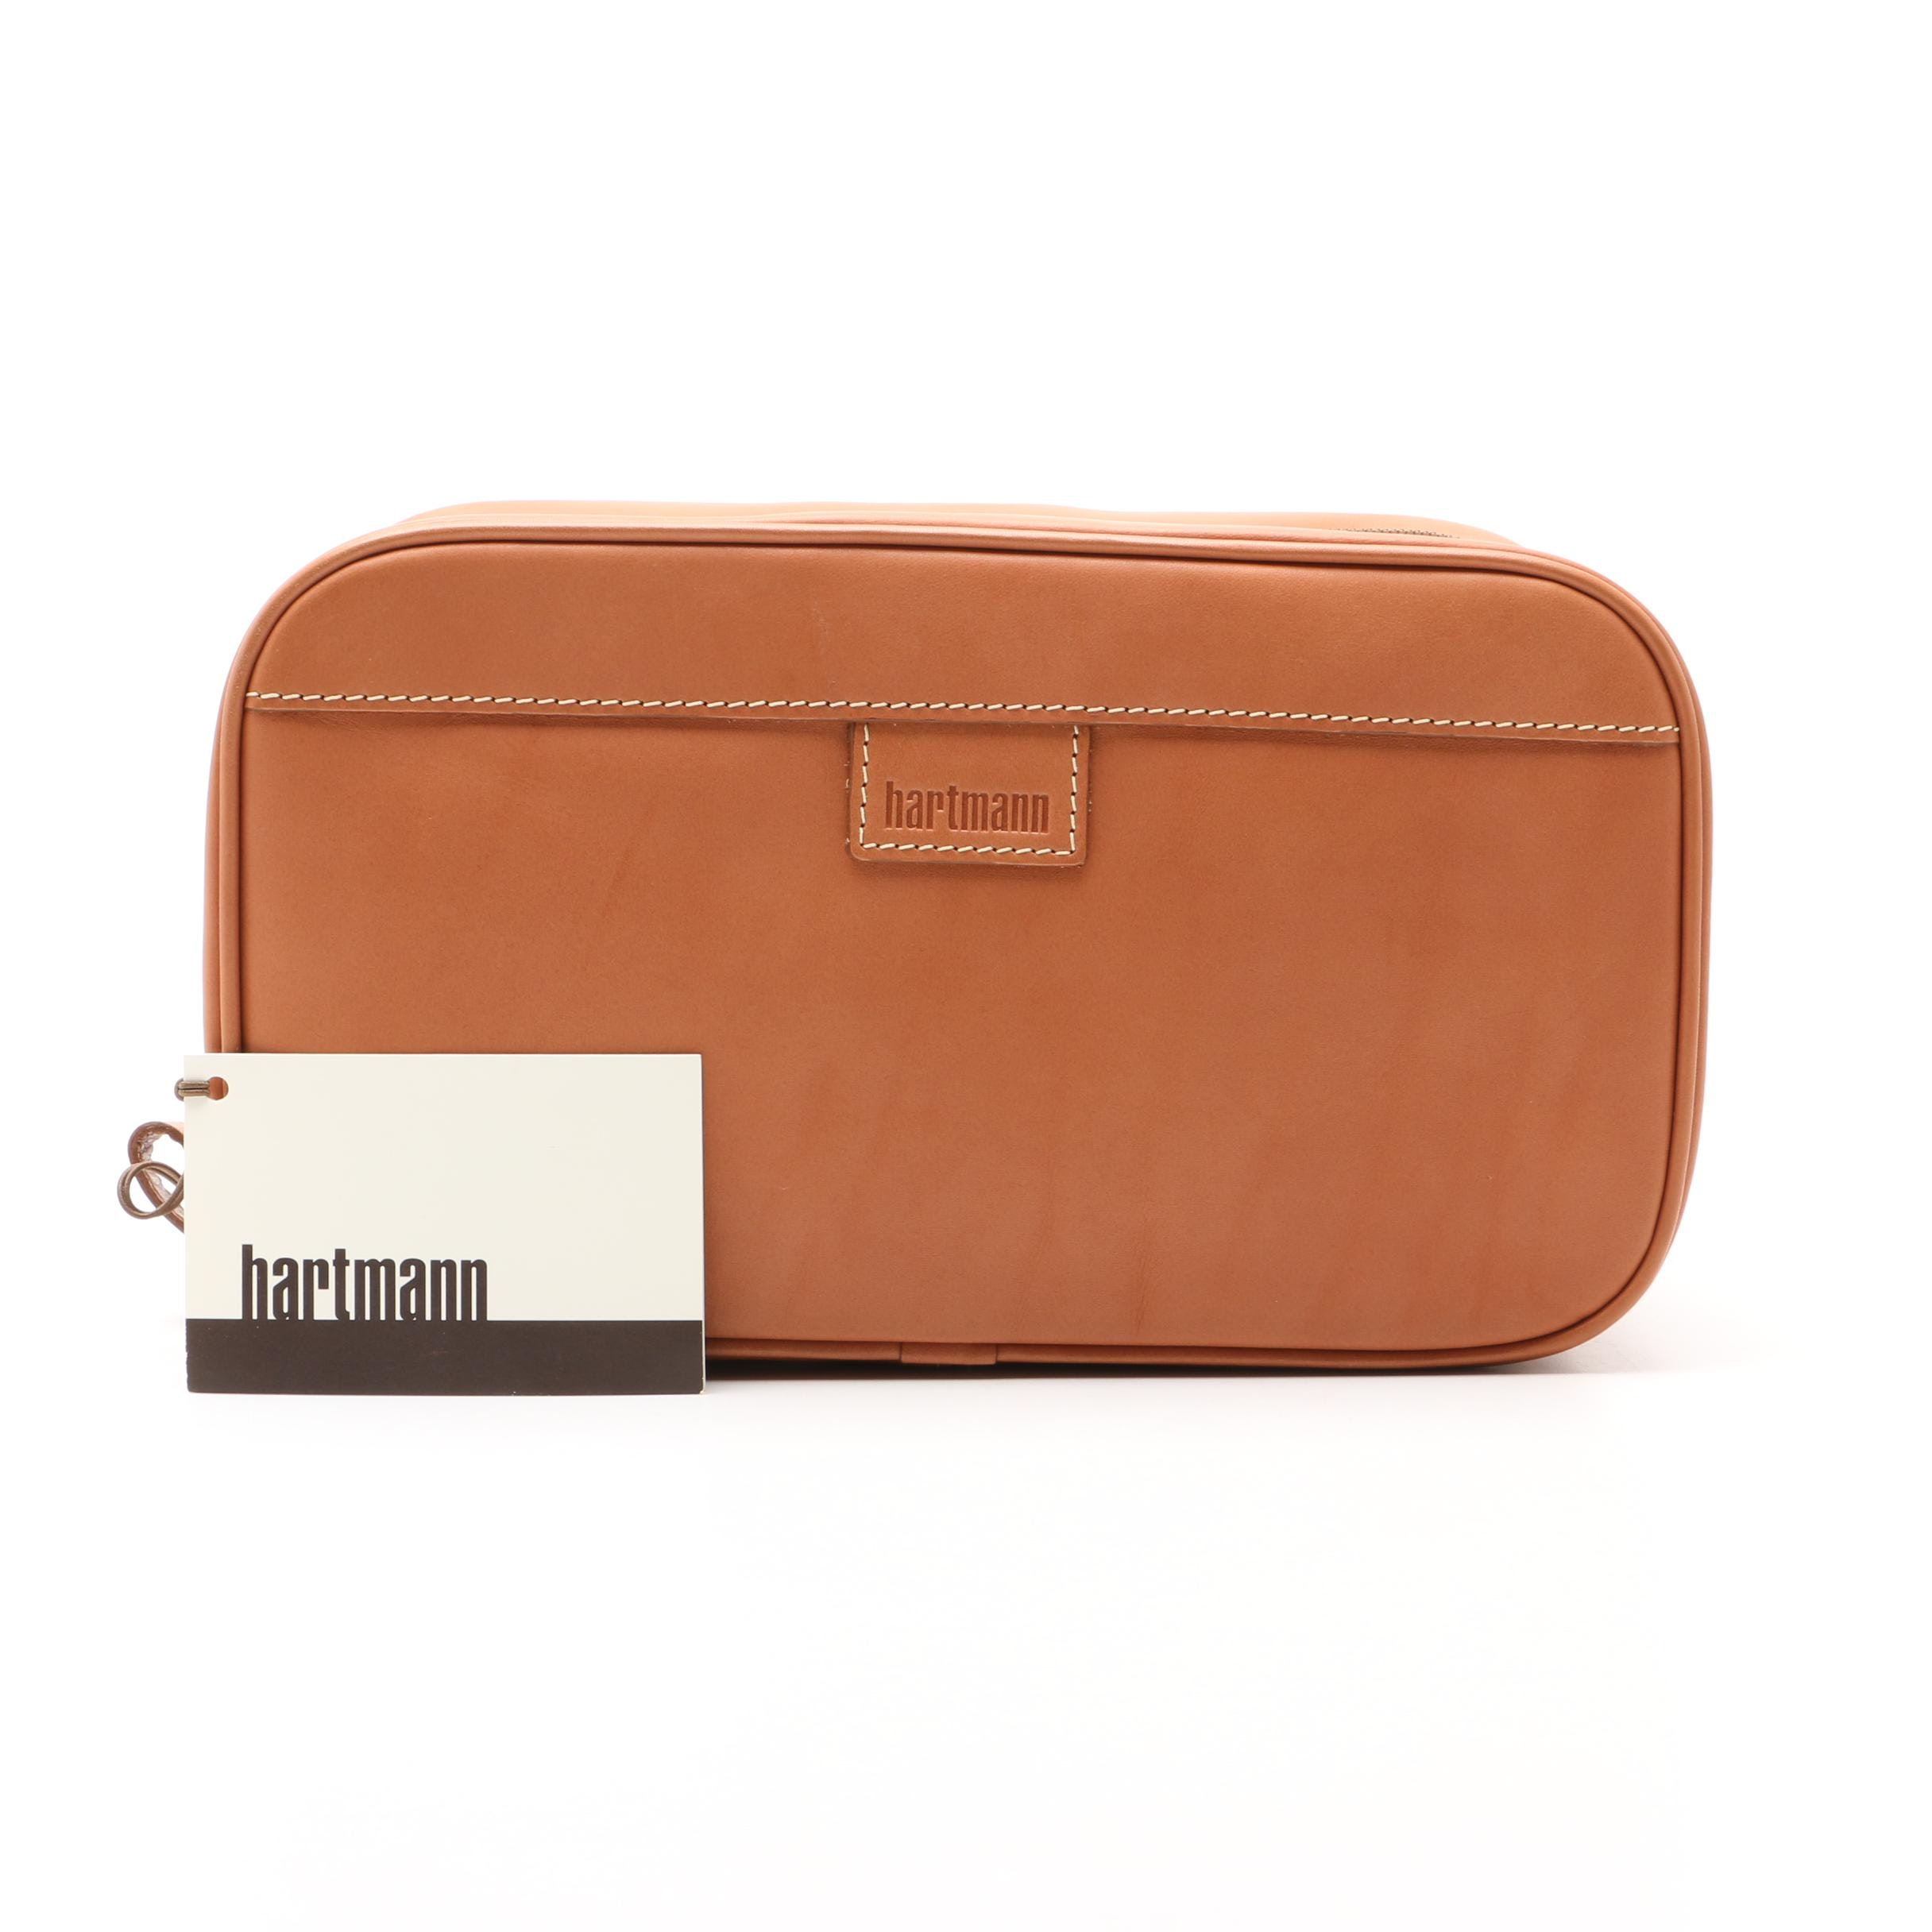 Hartmann Dopp Kit from the Belting Leather Collection